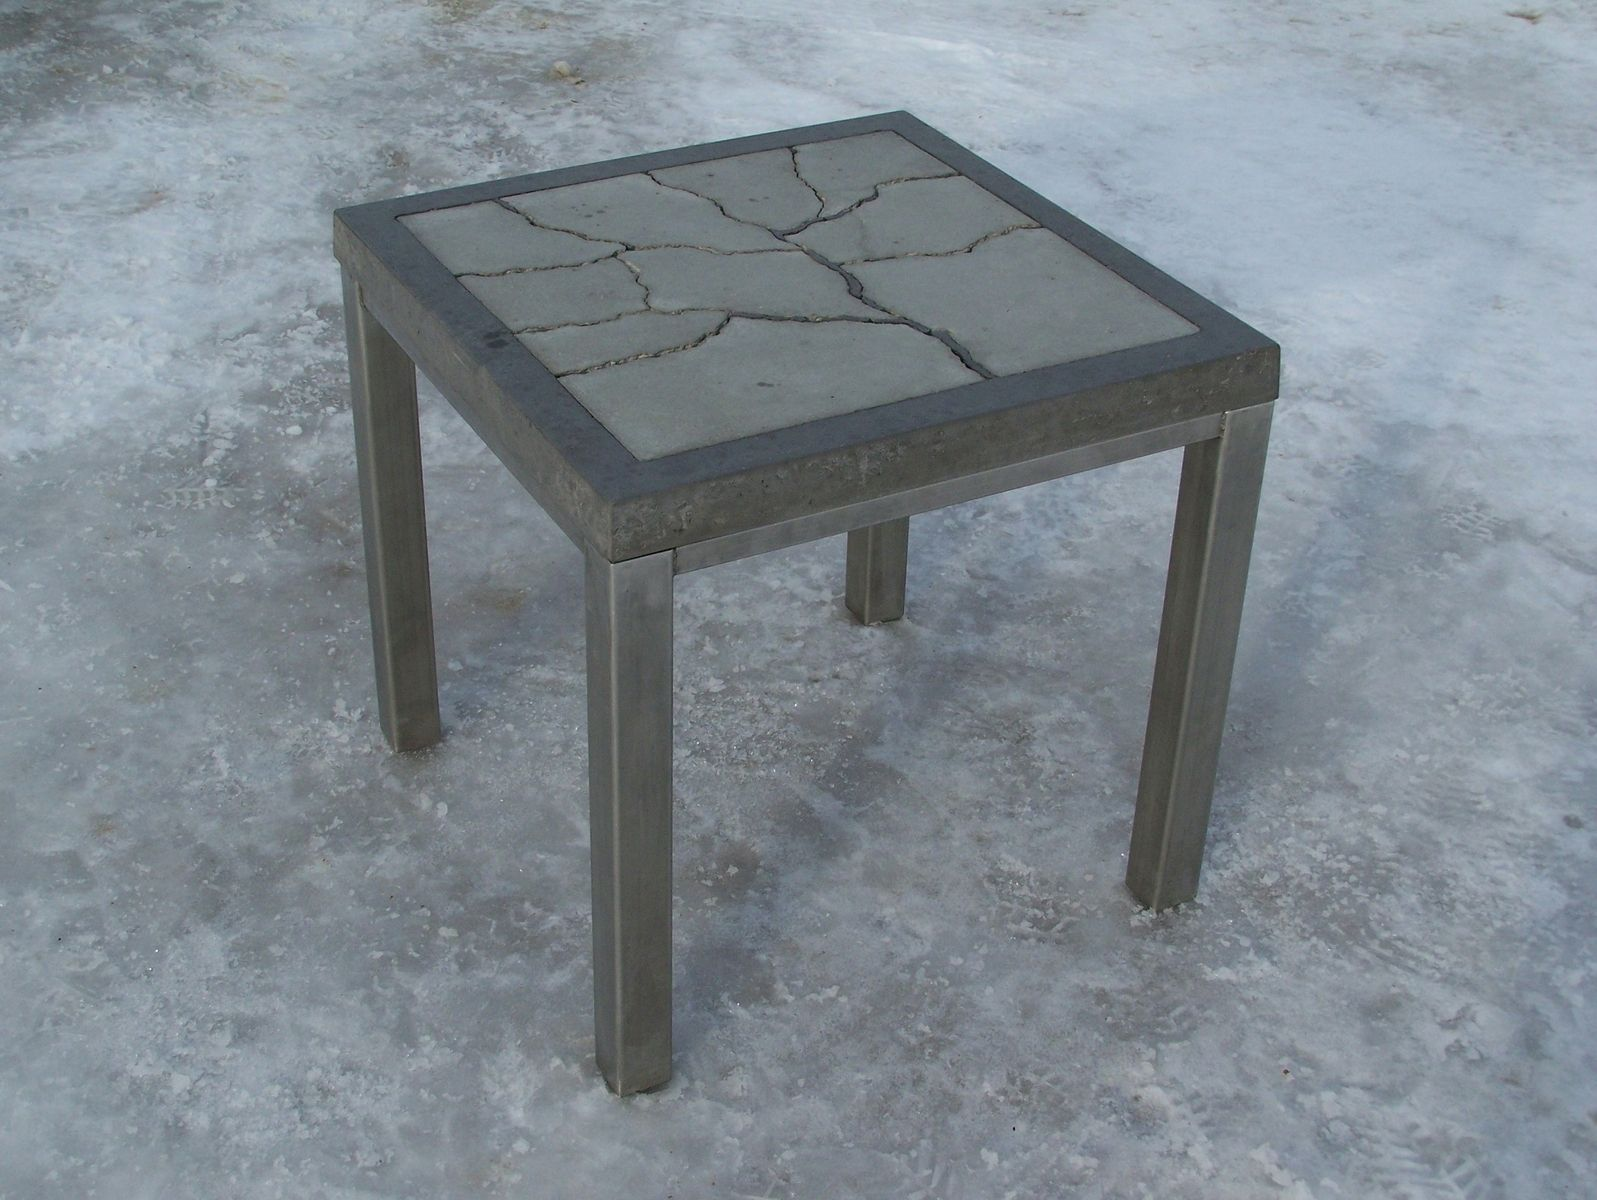 Brilliant Custom Fragmented Tree Concrete Table By Natural Concrete Download Free Architecture Designs Scobabritishbridgeorg